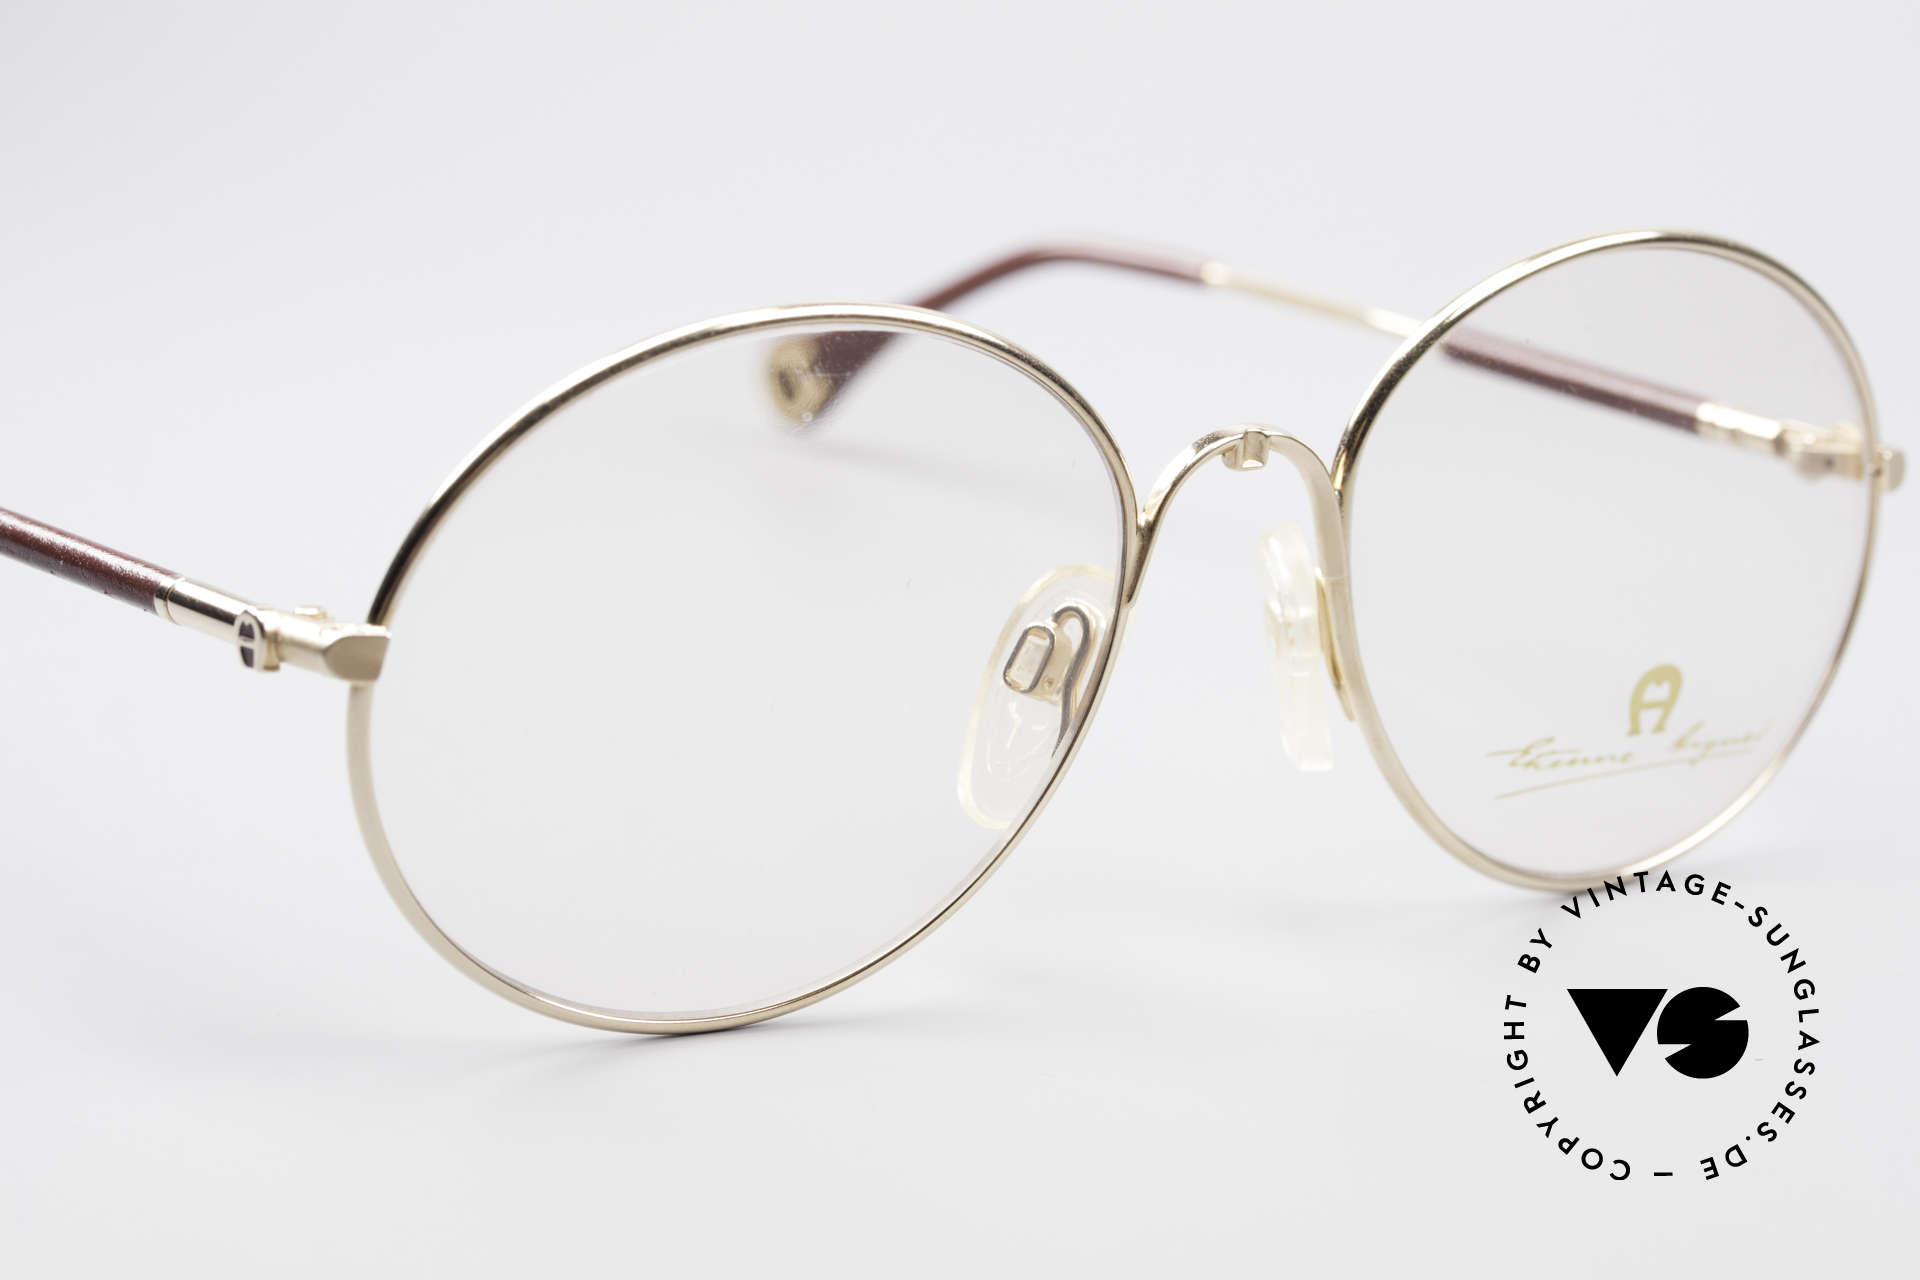 Aigner EA13 Round 80's Luxury Glasses, never worn (like all our rare 80's Aigner eyeglasses), Made for Men and Women